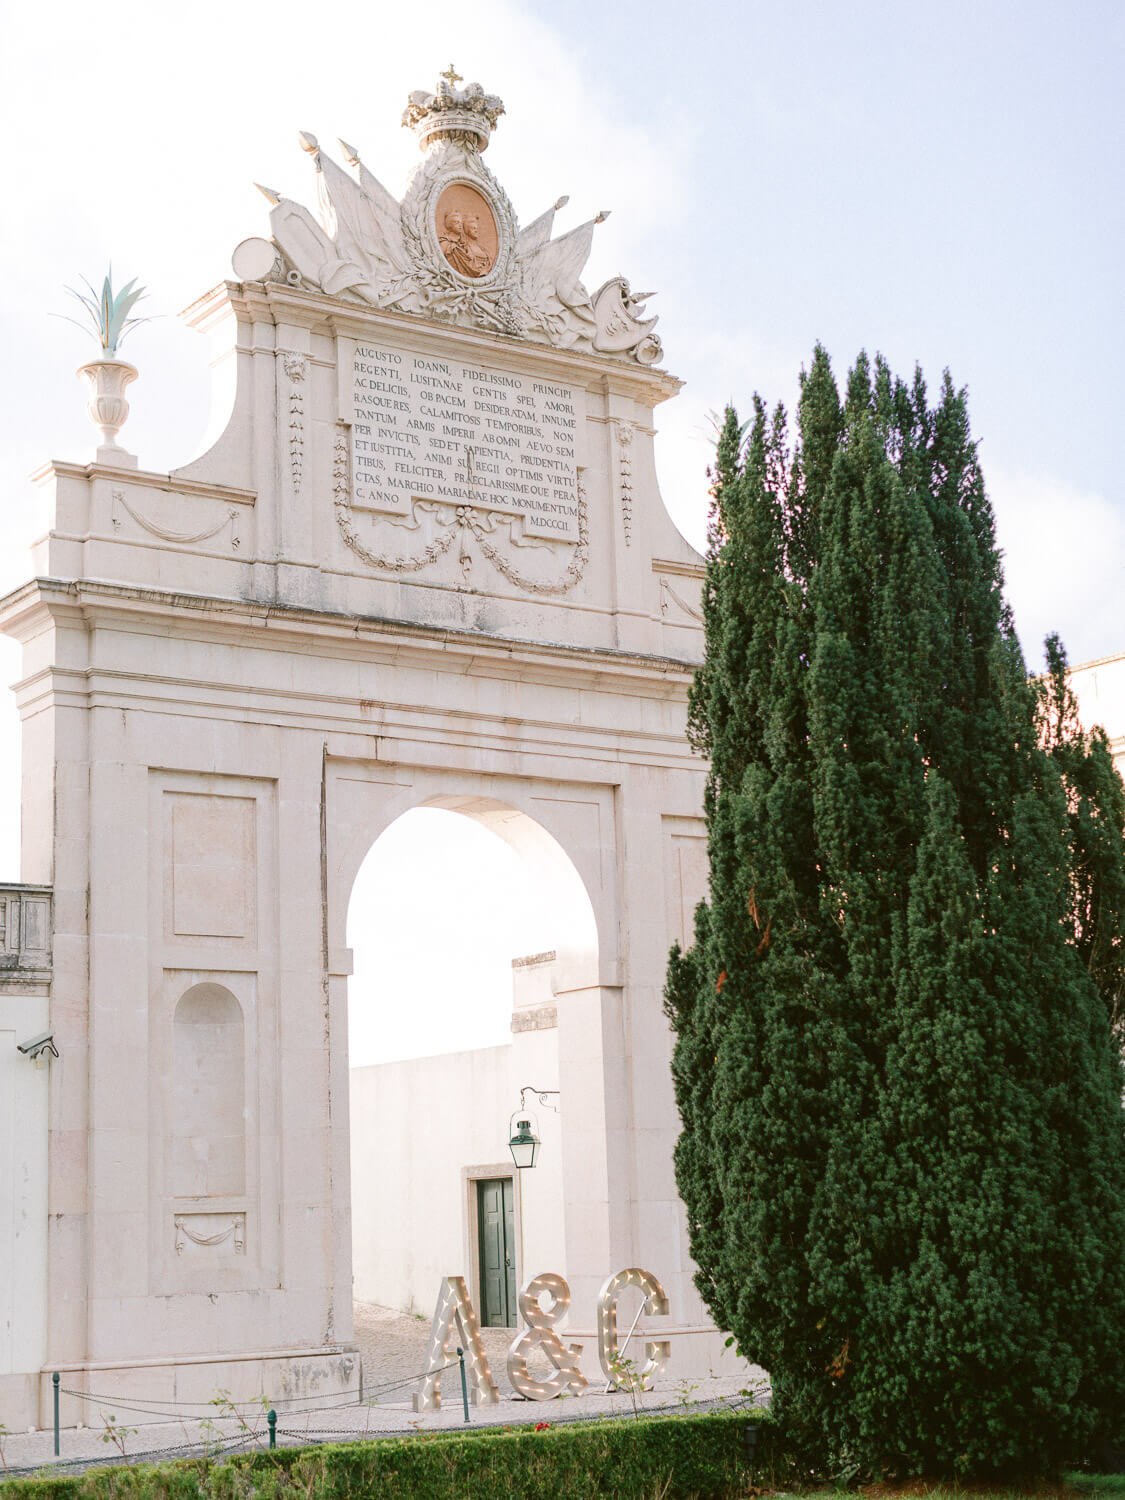 Palacio de Seteais triumphal Arch with wedding couple's initials decor by Portugal Wedding Photographer